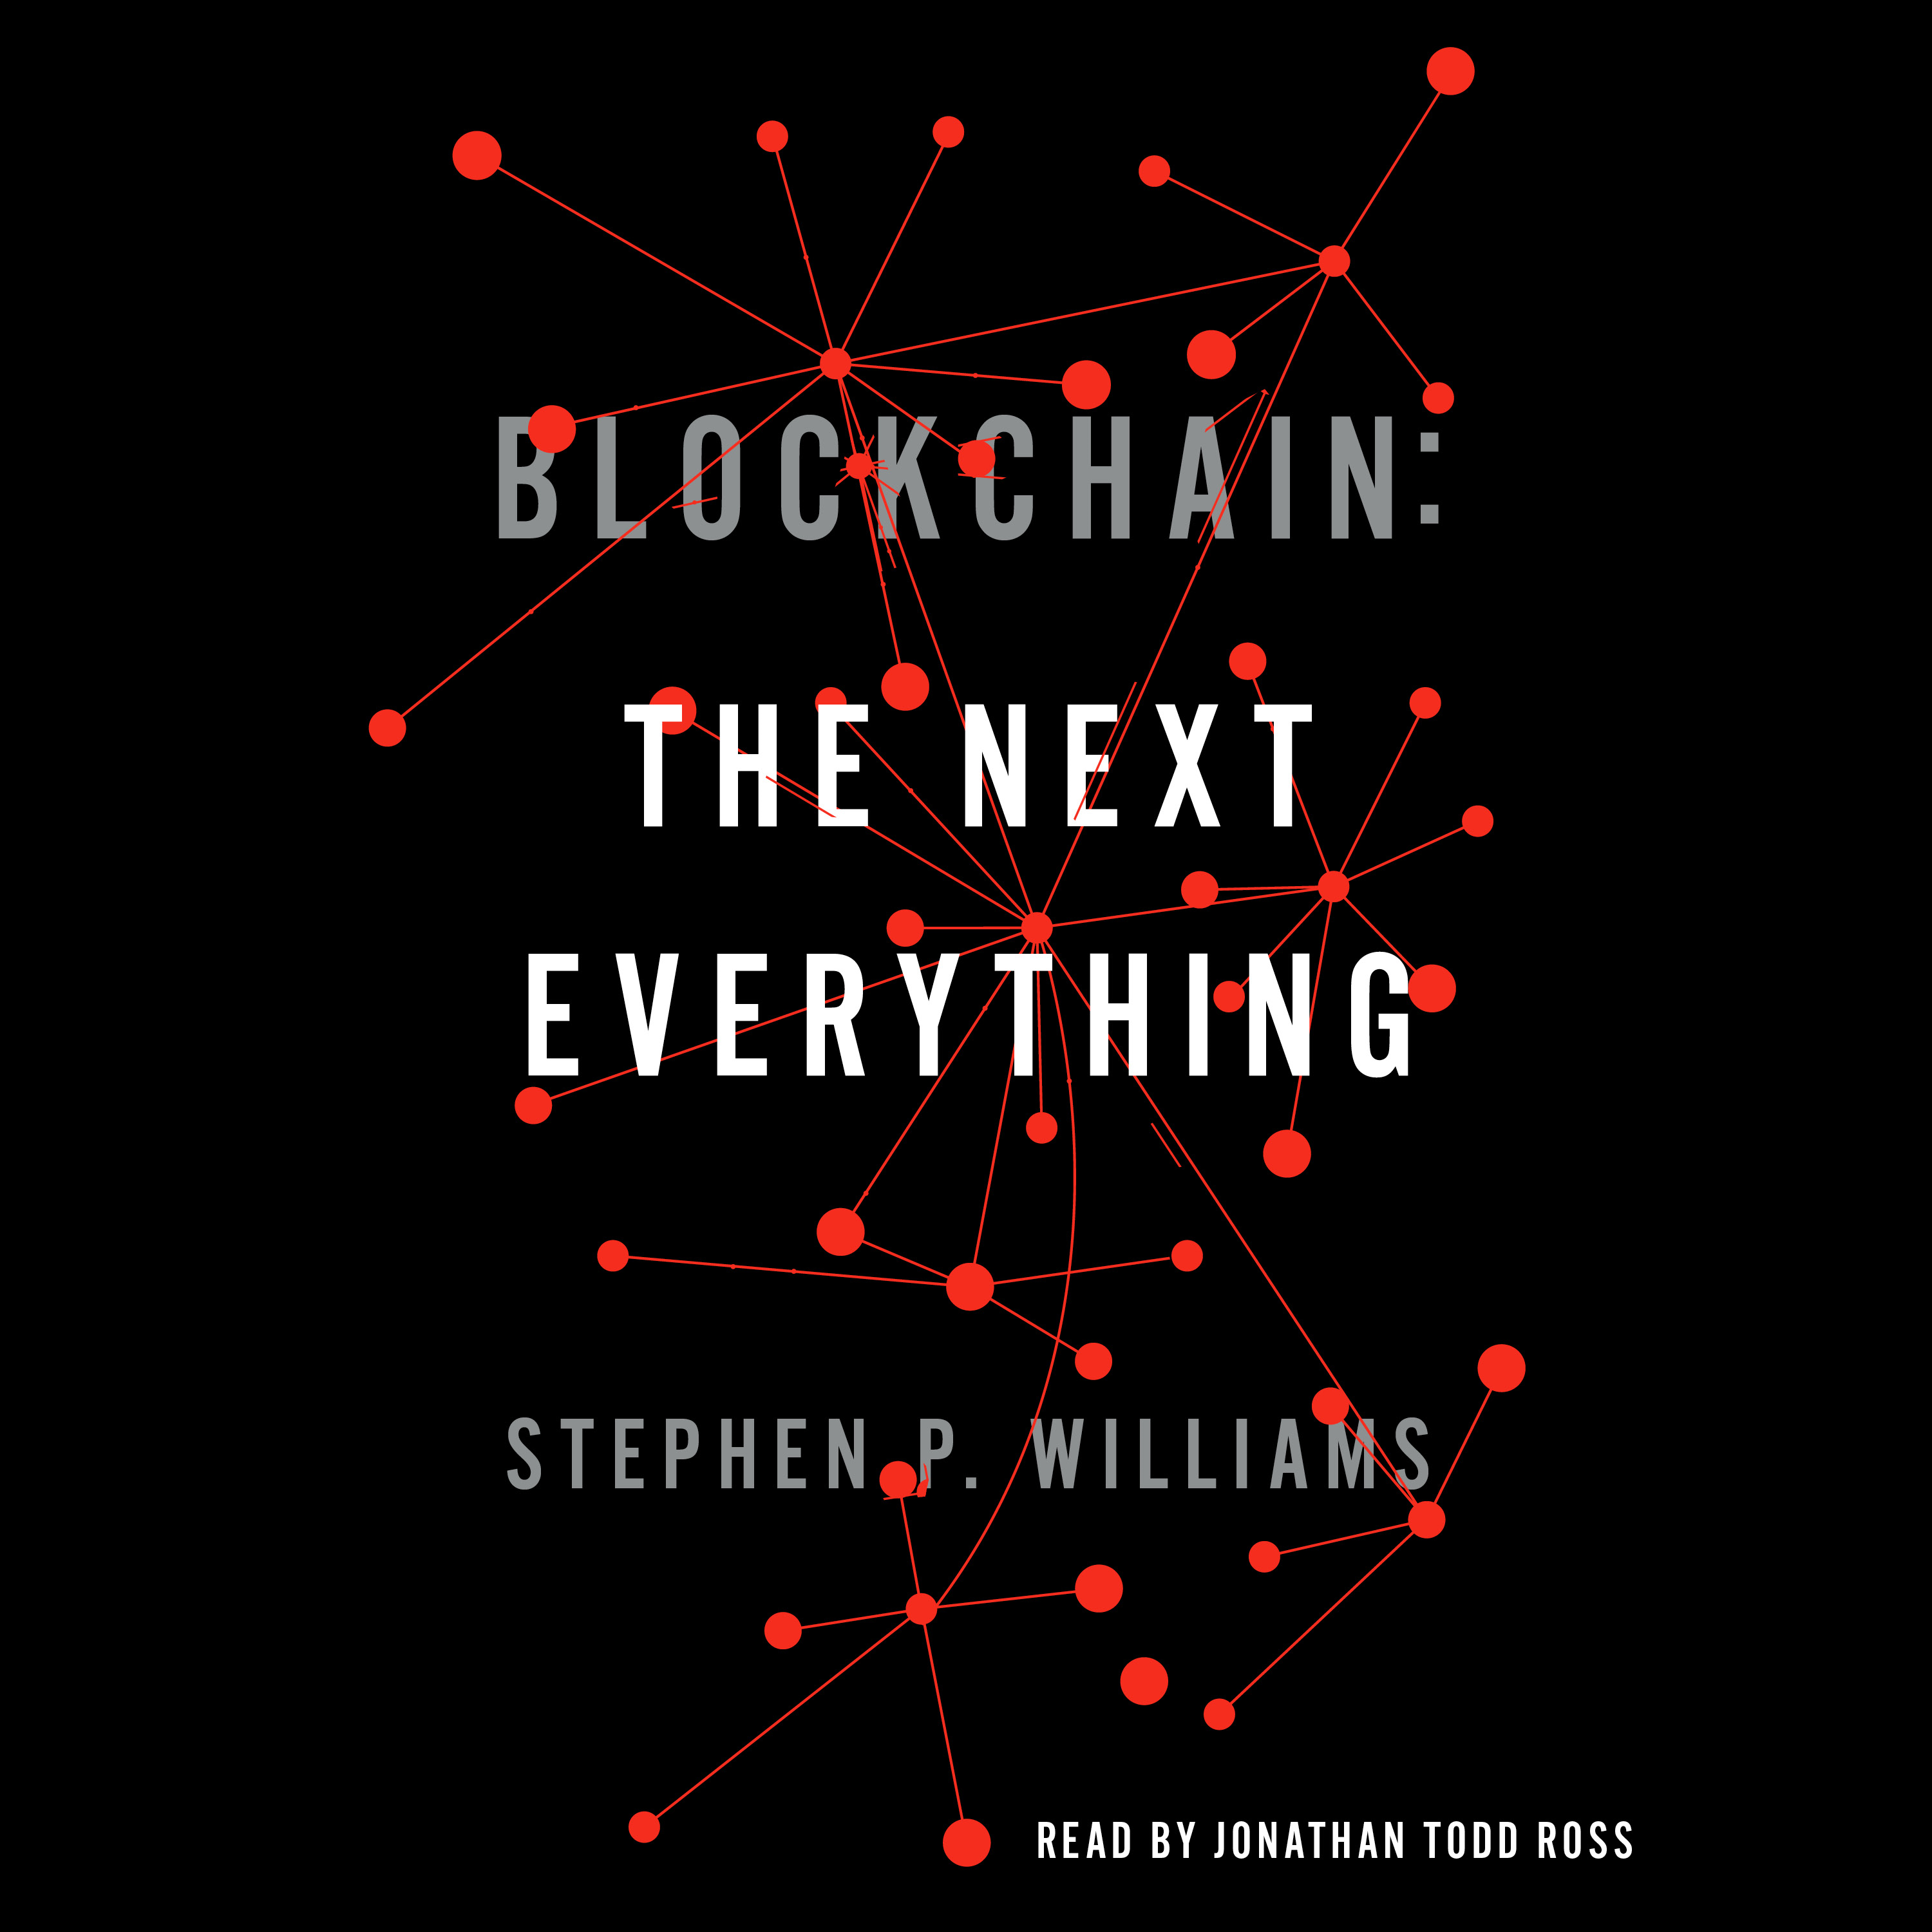 Blockchain: The Next Everything